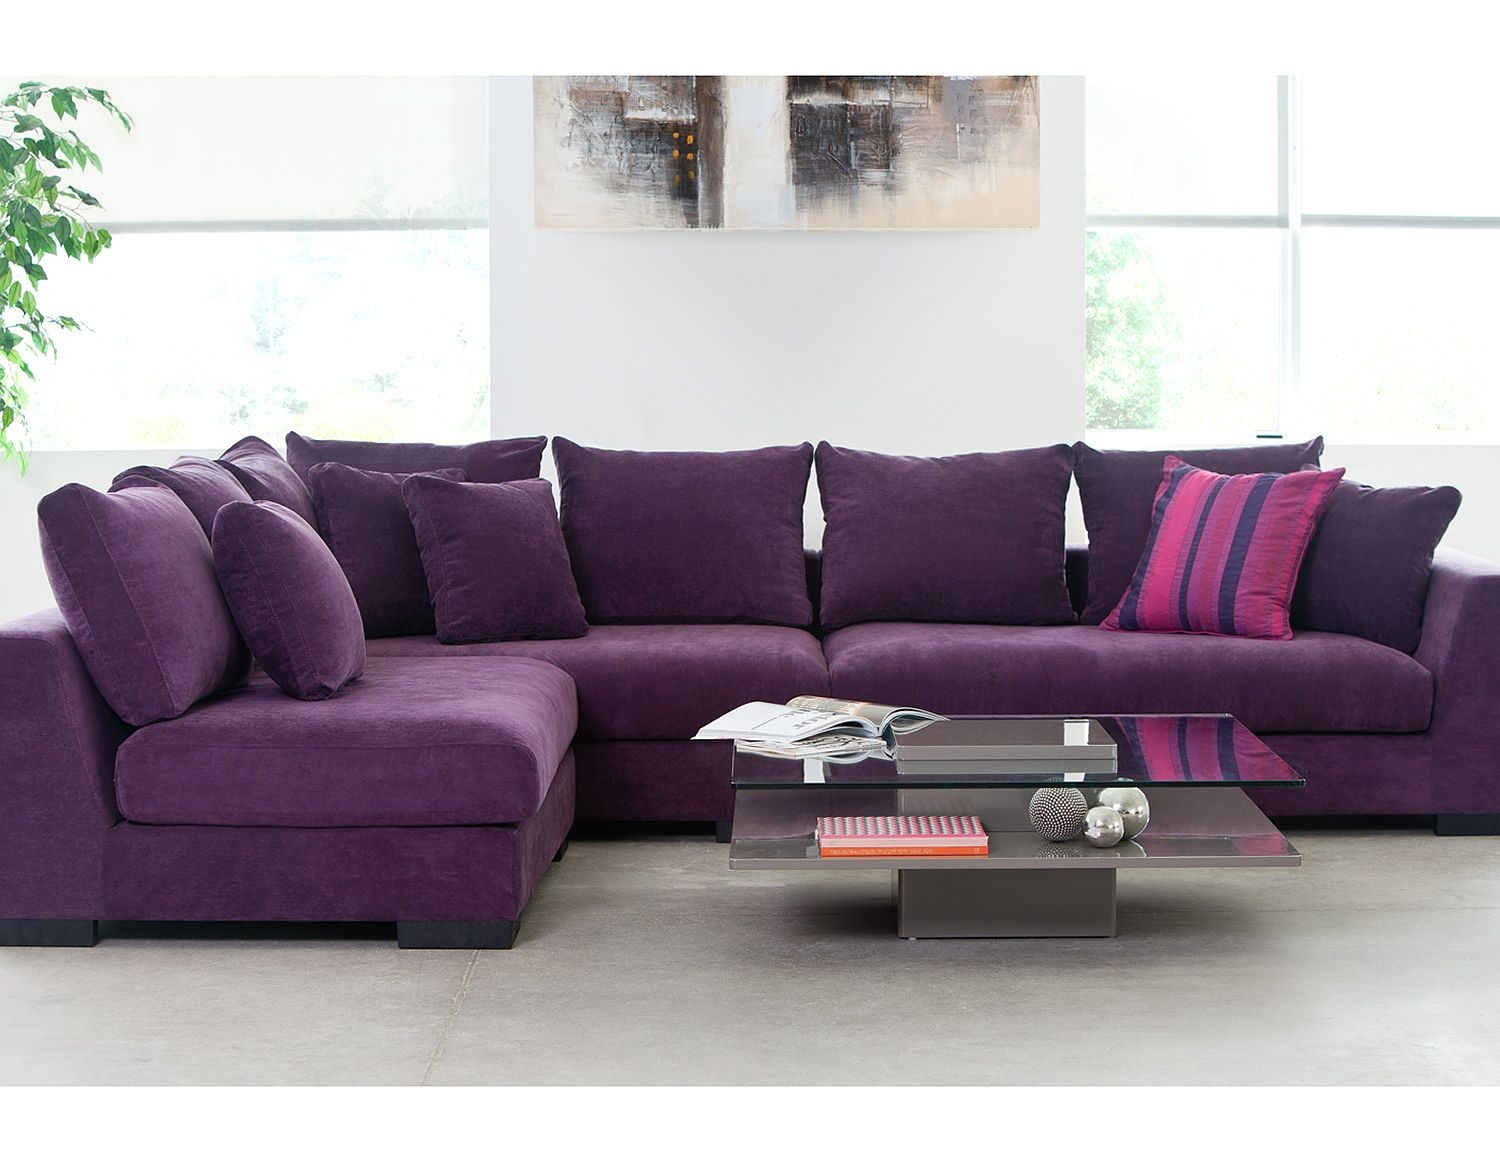 12 Best Ideas of Colorful Sectional Sofas